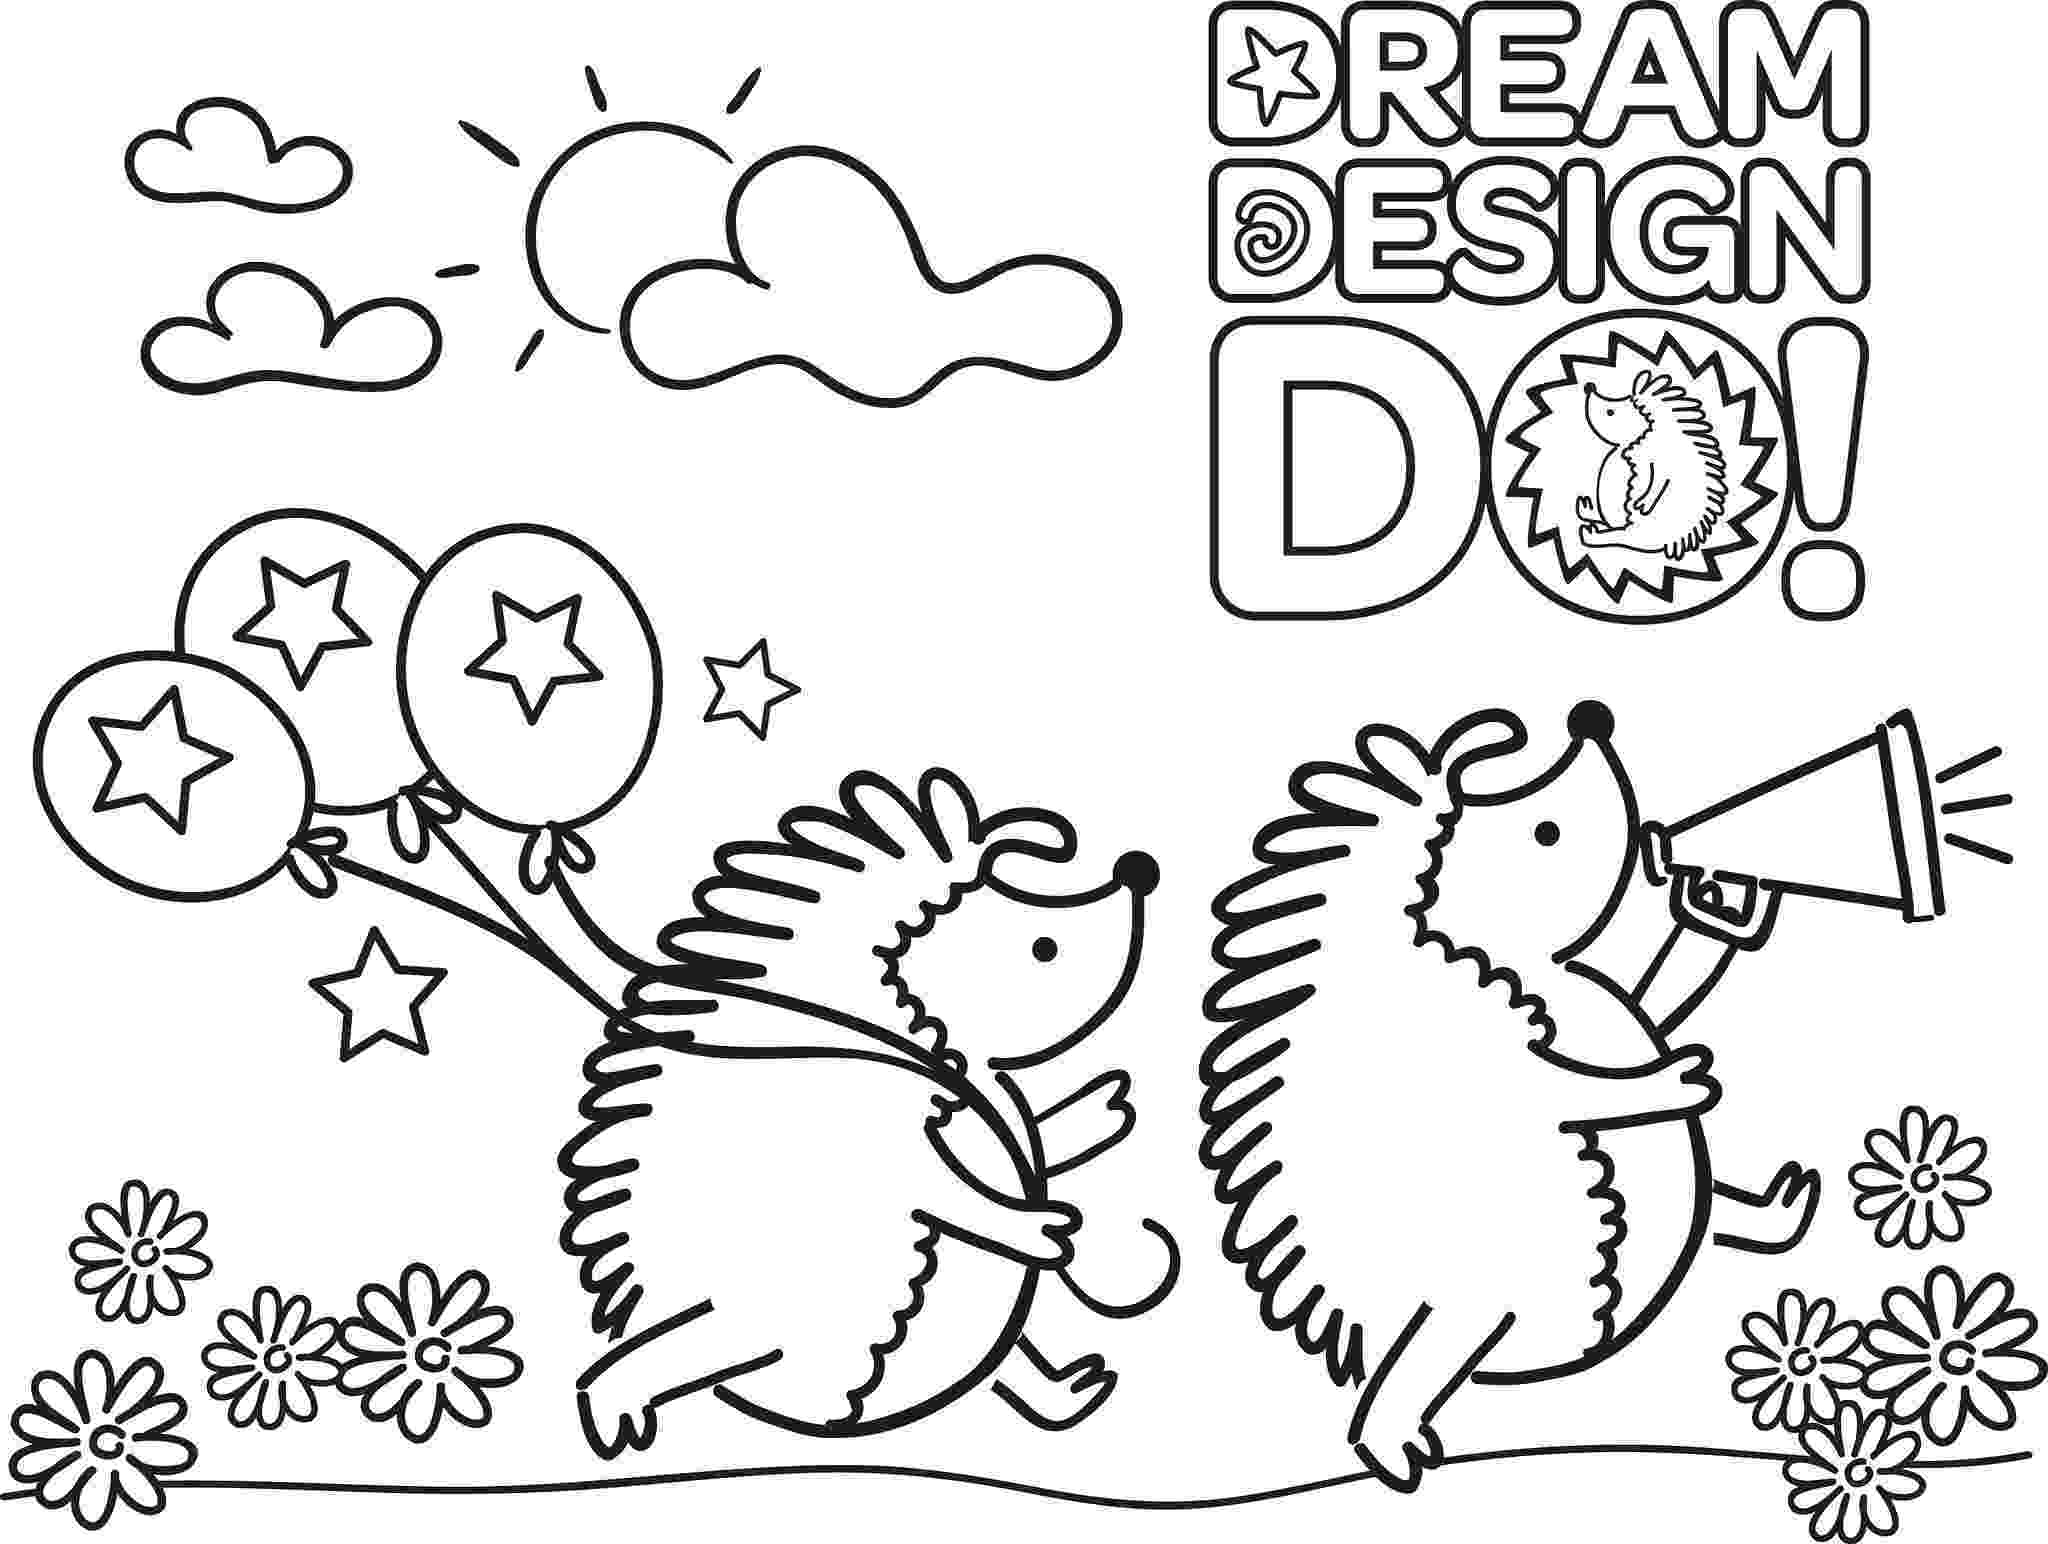 girl scout cookies coloring pages free printable girl scout coloring pages for kids cool2bkids girl scout pages coloring cookies